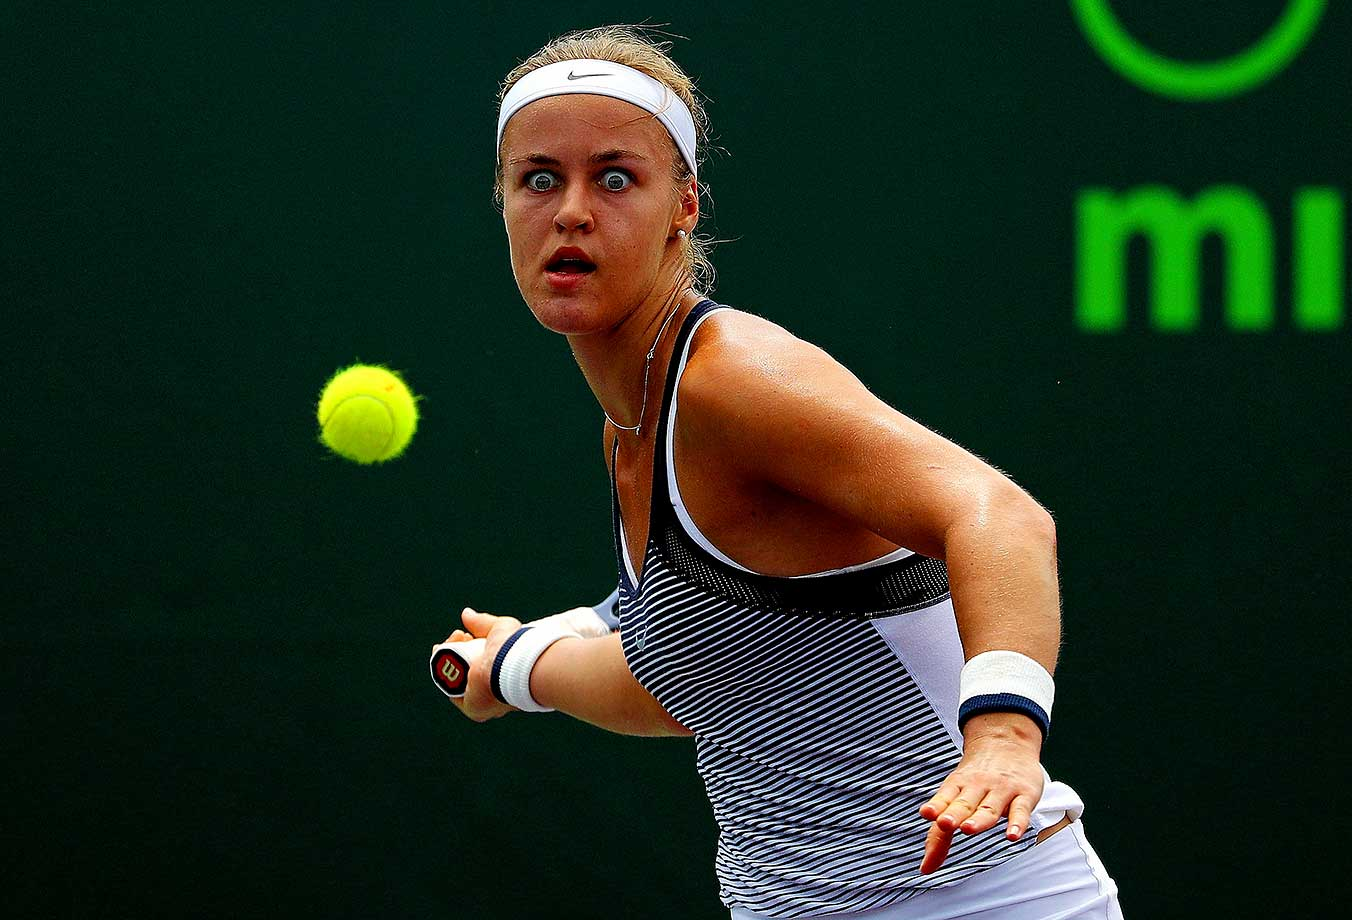 Anna Karolina Schmedlova of Slovakia keeps her eyes on the ball during Day 4 of the Miami Open in Key Biscayne, Fla.